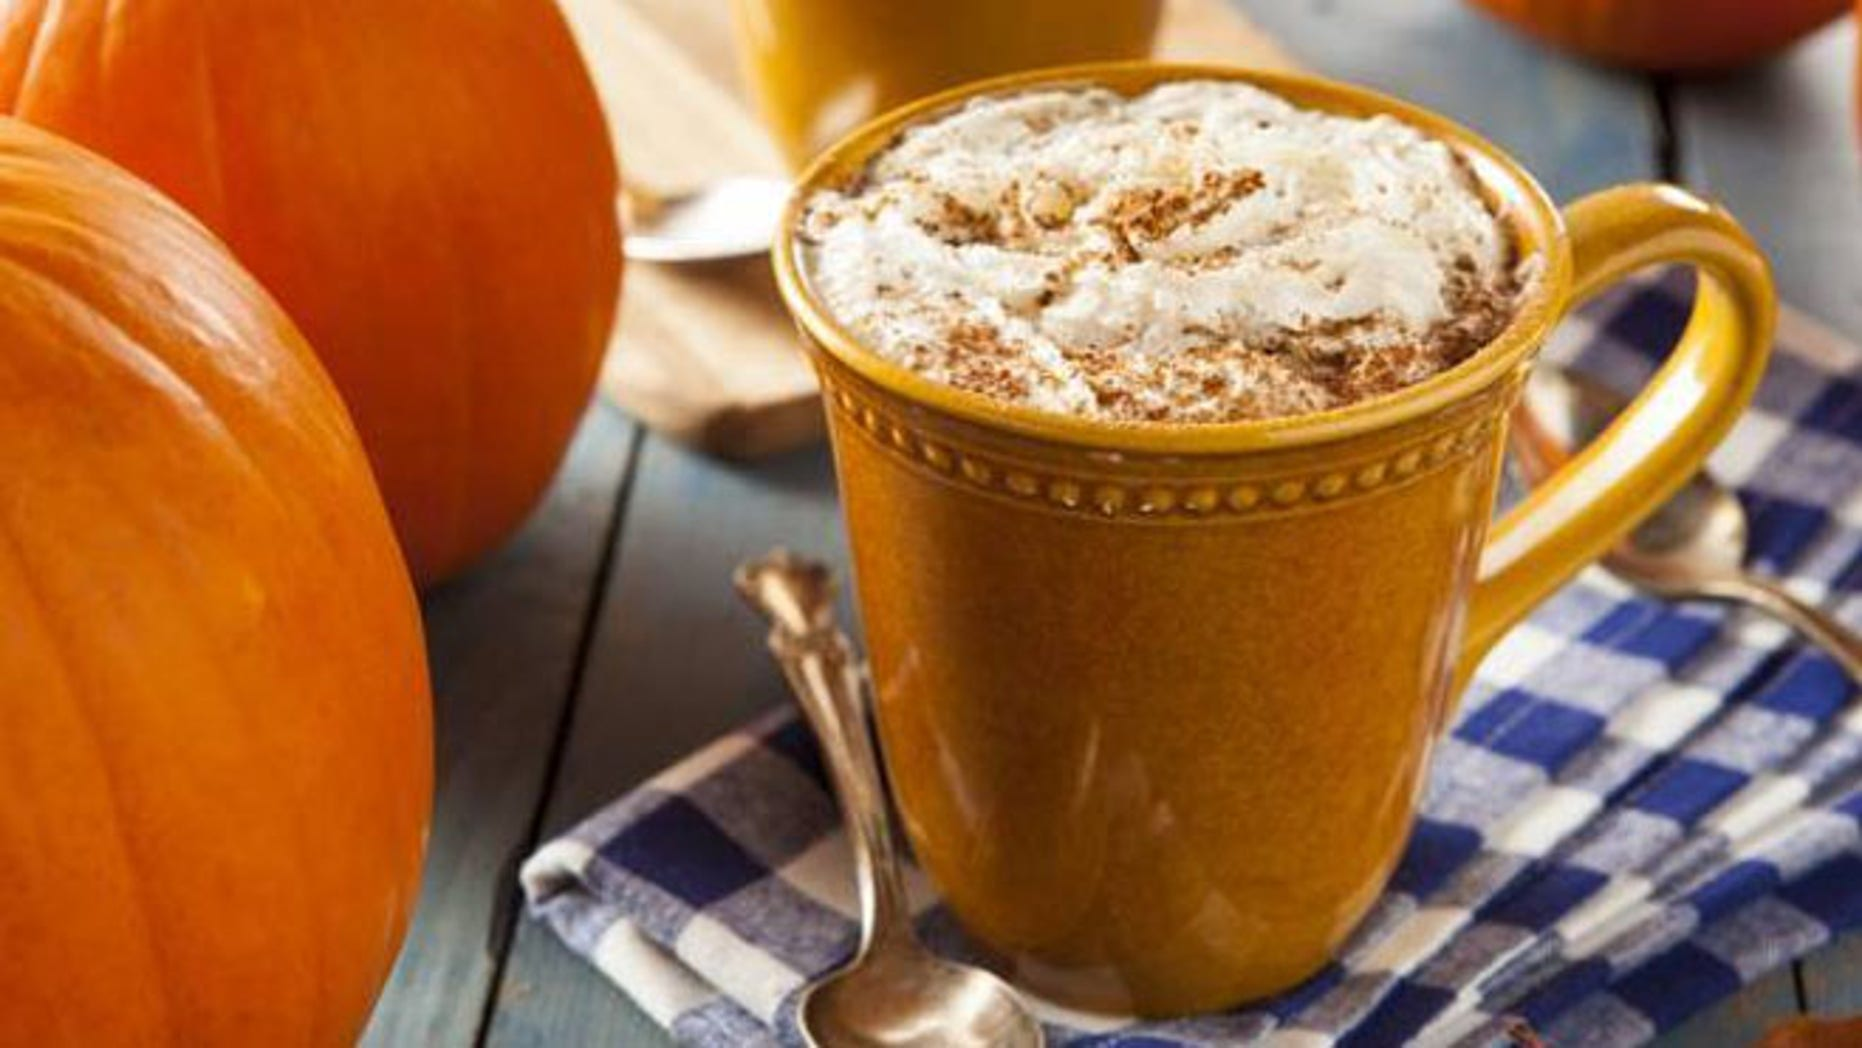 Fans can get an early taste of Starbucks PSL-if they have the password.